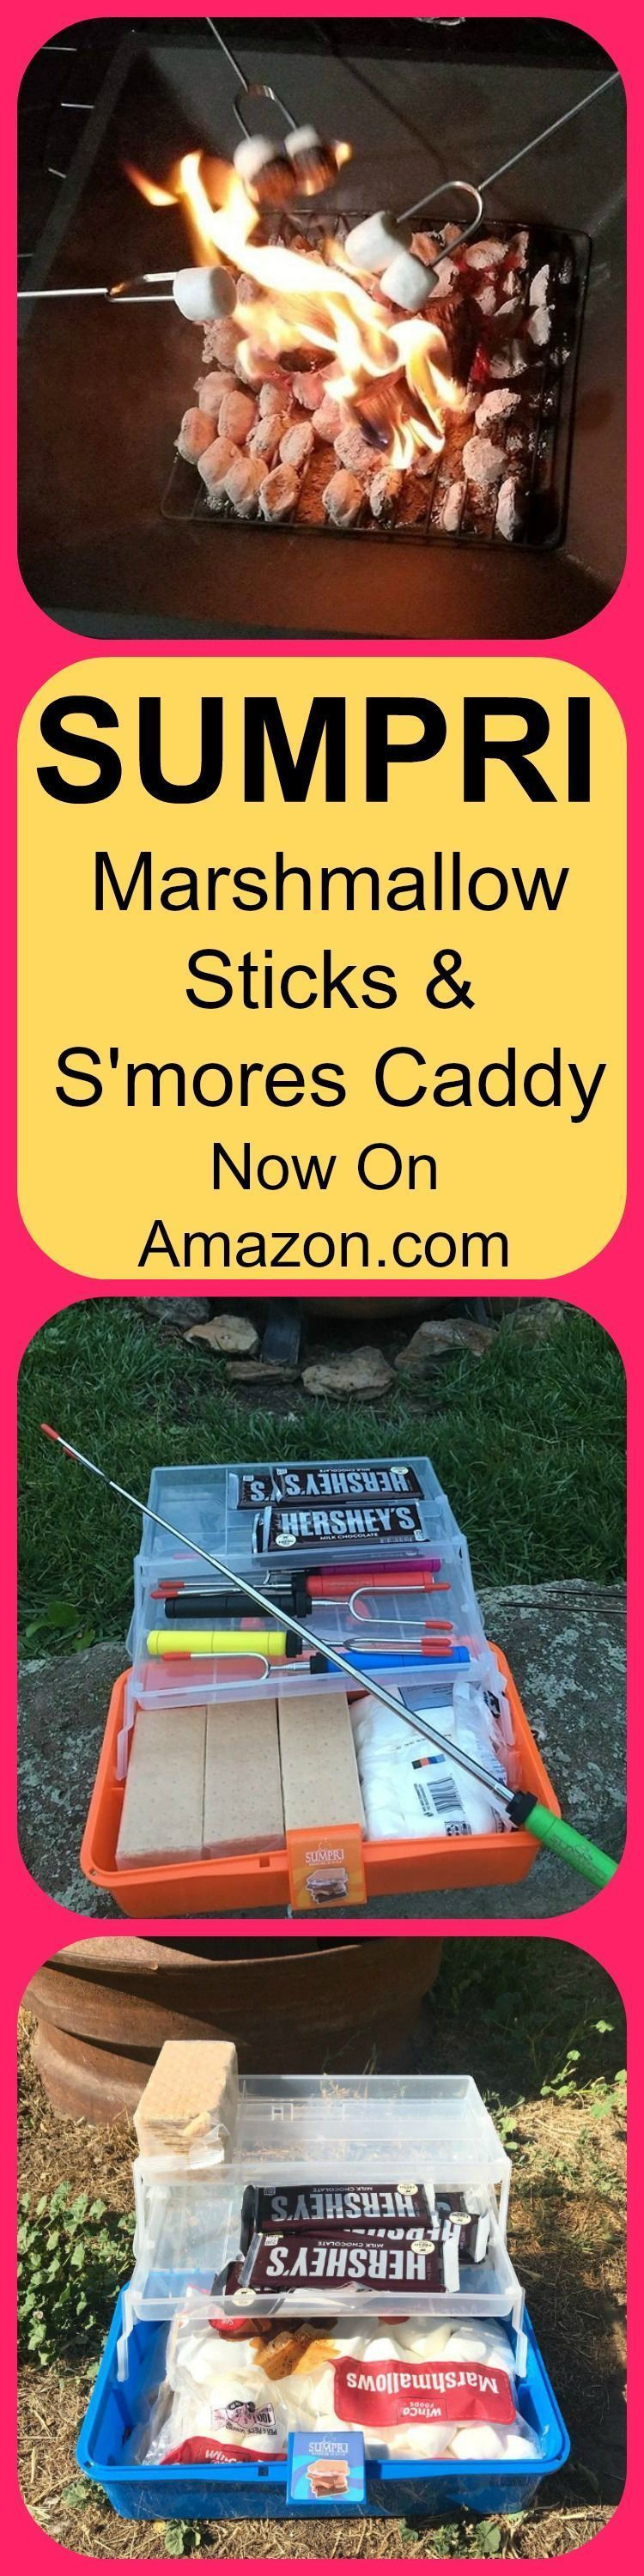 SUMPRI S'mores Caddy & 34 Inch extendable Marshmallow Roasting Sticks -Keep All Your S'mores Supplies In The Same Place ! On Sale now on Amazon.com or sumpri.com. . . . . ..... . #sumpri #s'mores #smorescaddy #marshmallowsticks #smores #smoresbox #smoressticks #hersheybar #grahmcrackers #roastingsticks #camping #travel #adventure #explore #family #fun #kids #box #crackers #smoreskit #s'moreskit #smorescaddy #graham #s'morescaddy #hershey #hersheysmores #smoressticks SUMPRI S'mores Caddy & 34 Inc #smoressticks